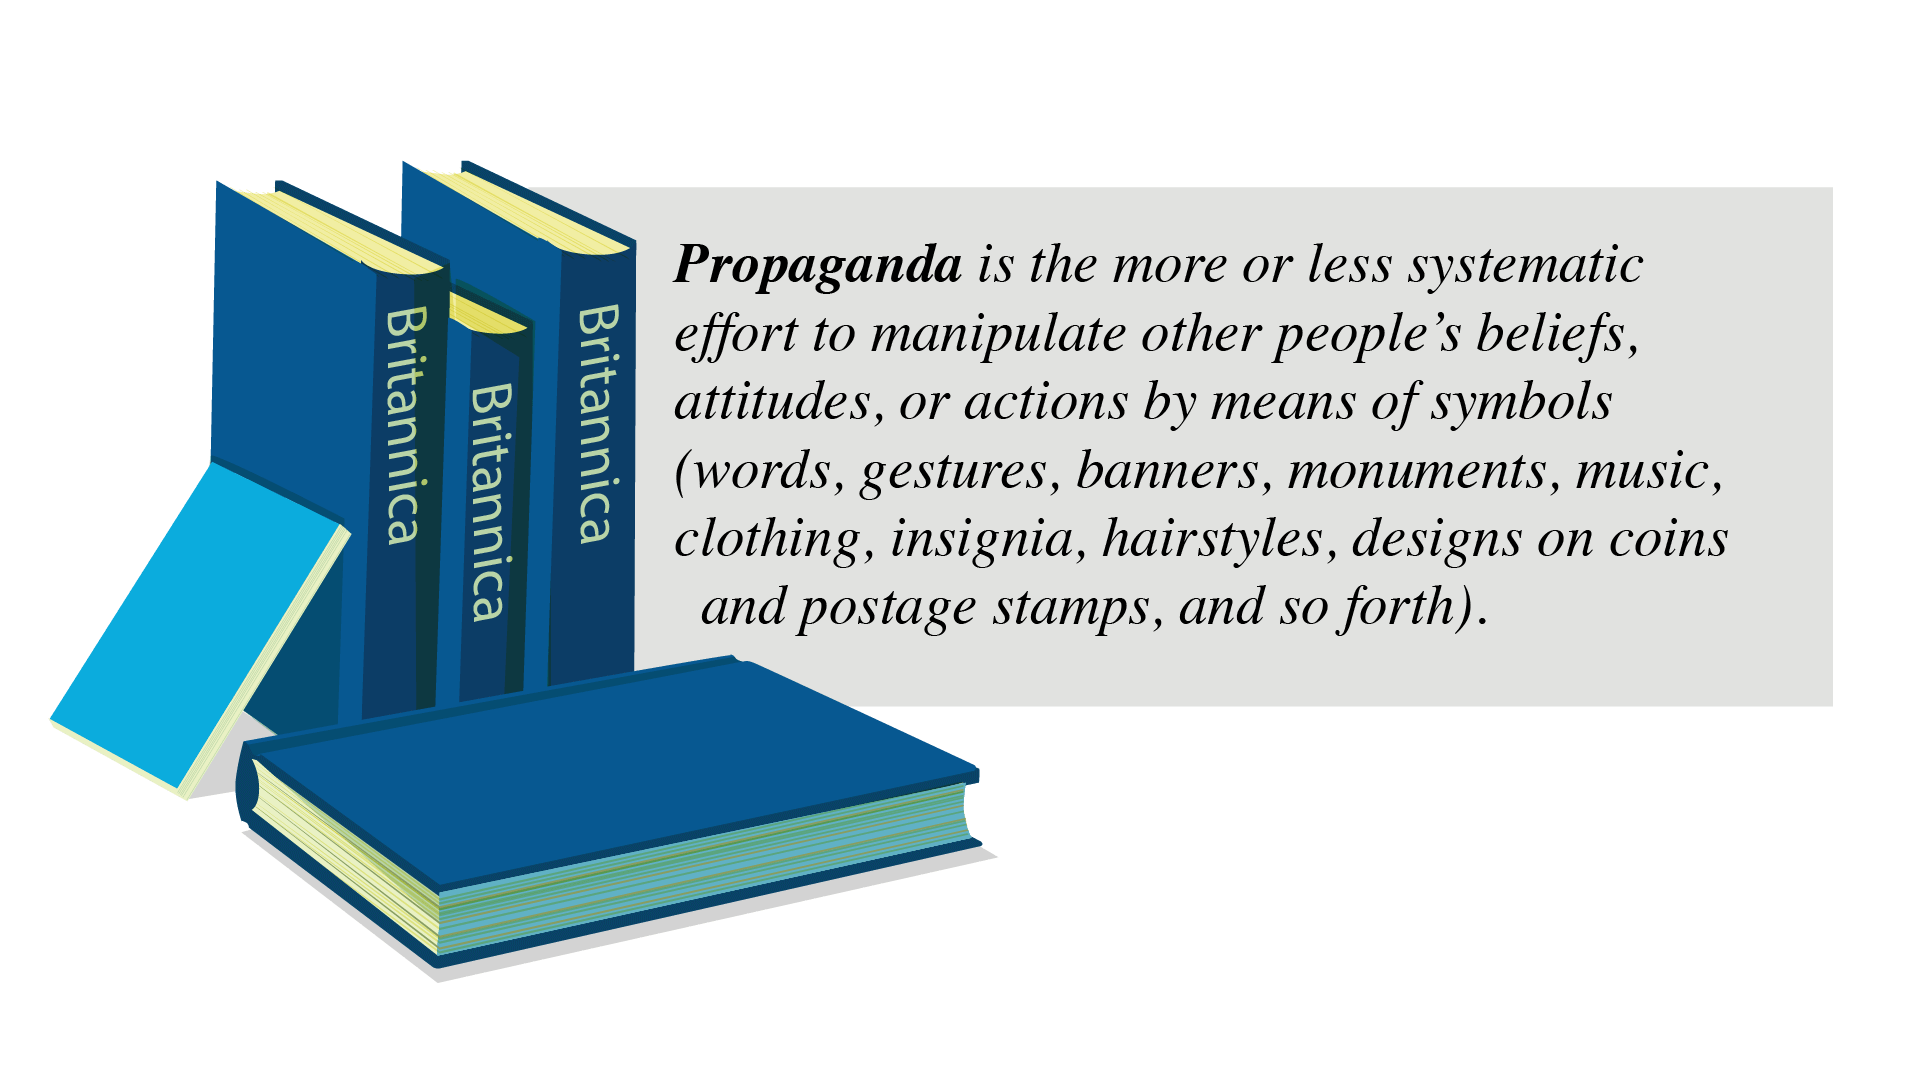 Blue encyclopedias stacked alongside text quote of the description and definition of propaganda: Britannica defines propaganda as follows: Propaganda is the more or less systematic effort to manipulate other people's beliefs, attitudes, or actions by means of symbols (words, gestures, banners, monuments, music, clothing, insignia, hairstyles, designs on coins and postage stamps, and so forth). Deliberateness and a relatively heavy emphasis on manipulation distinguish propaganda from casual conversation or the free and easy exchange of ideas. Propagandists have a specified goal or set of goals. To achieve these, they deliberately select facts, arguments, and displays of symbols and present them in ways they think will have the most effect.